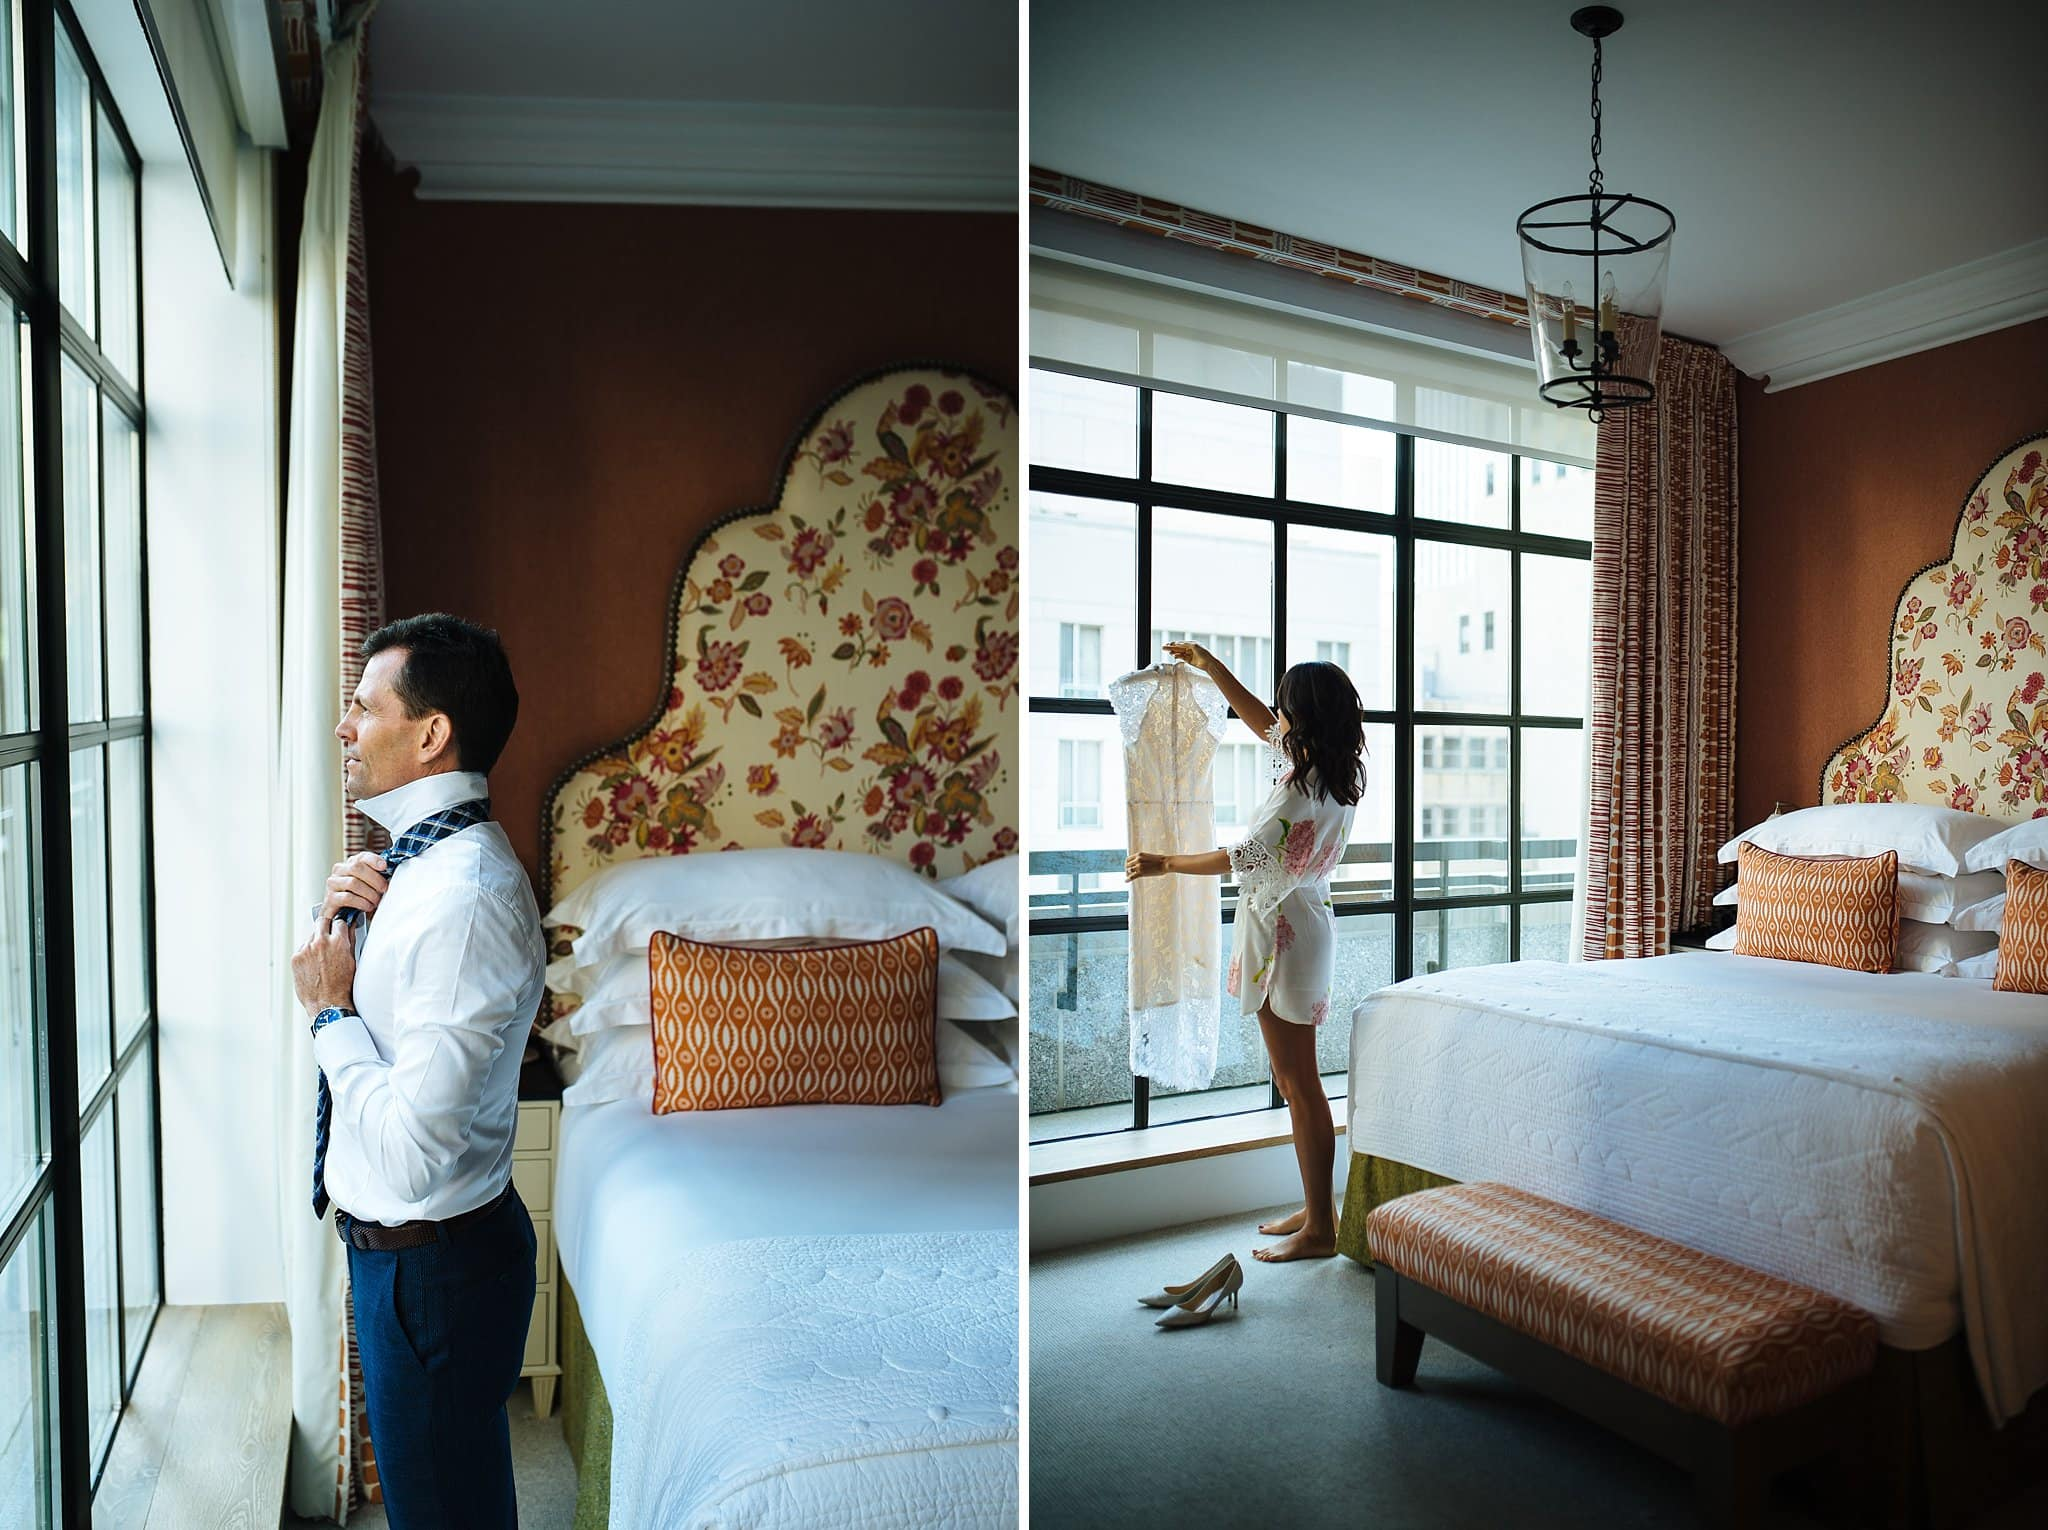 Bride and groom elopement getting ready photos at The Whitby hotel